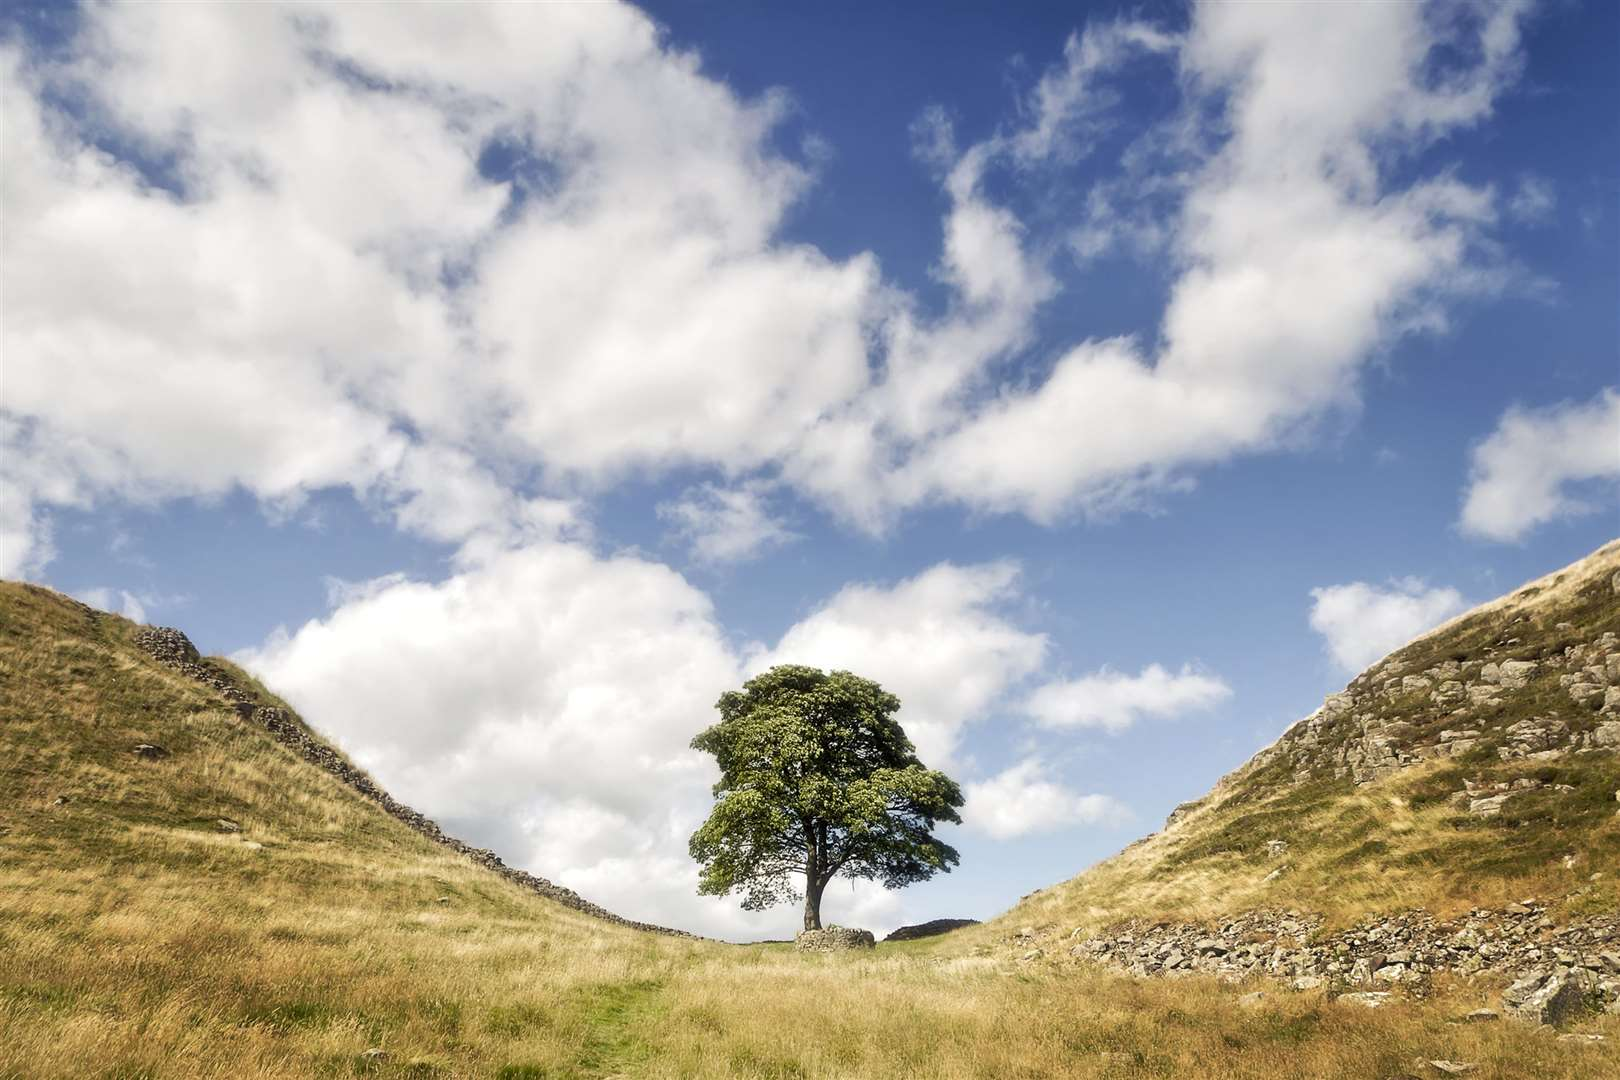 One of the most famous points on Hadrian's Wall – Sycamore Gap. Picture: PA Photo/iStock